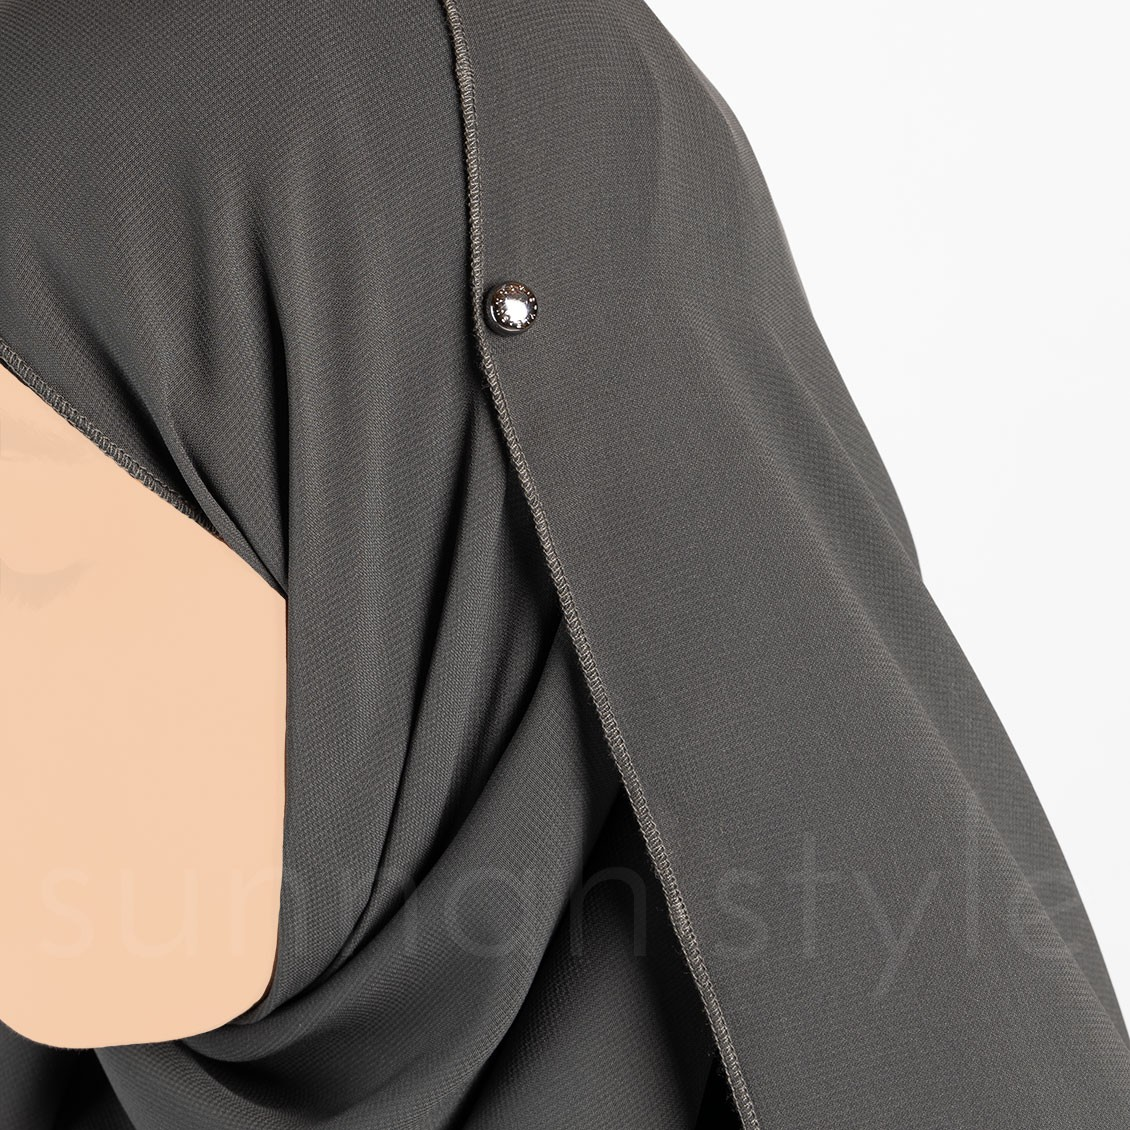 Sunnah Style Esteem Wearable Hijab Magnets Gunmetal